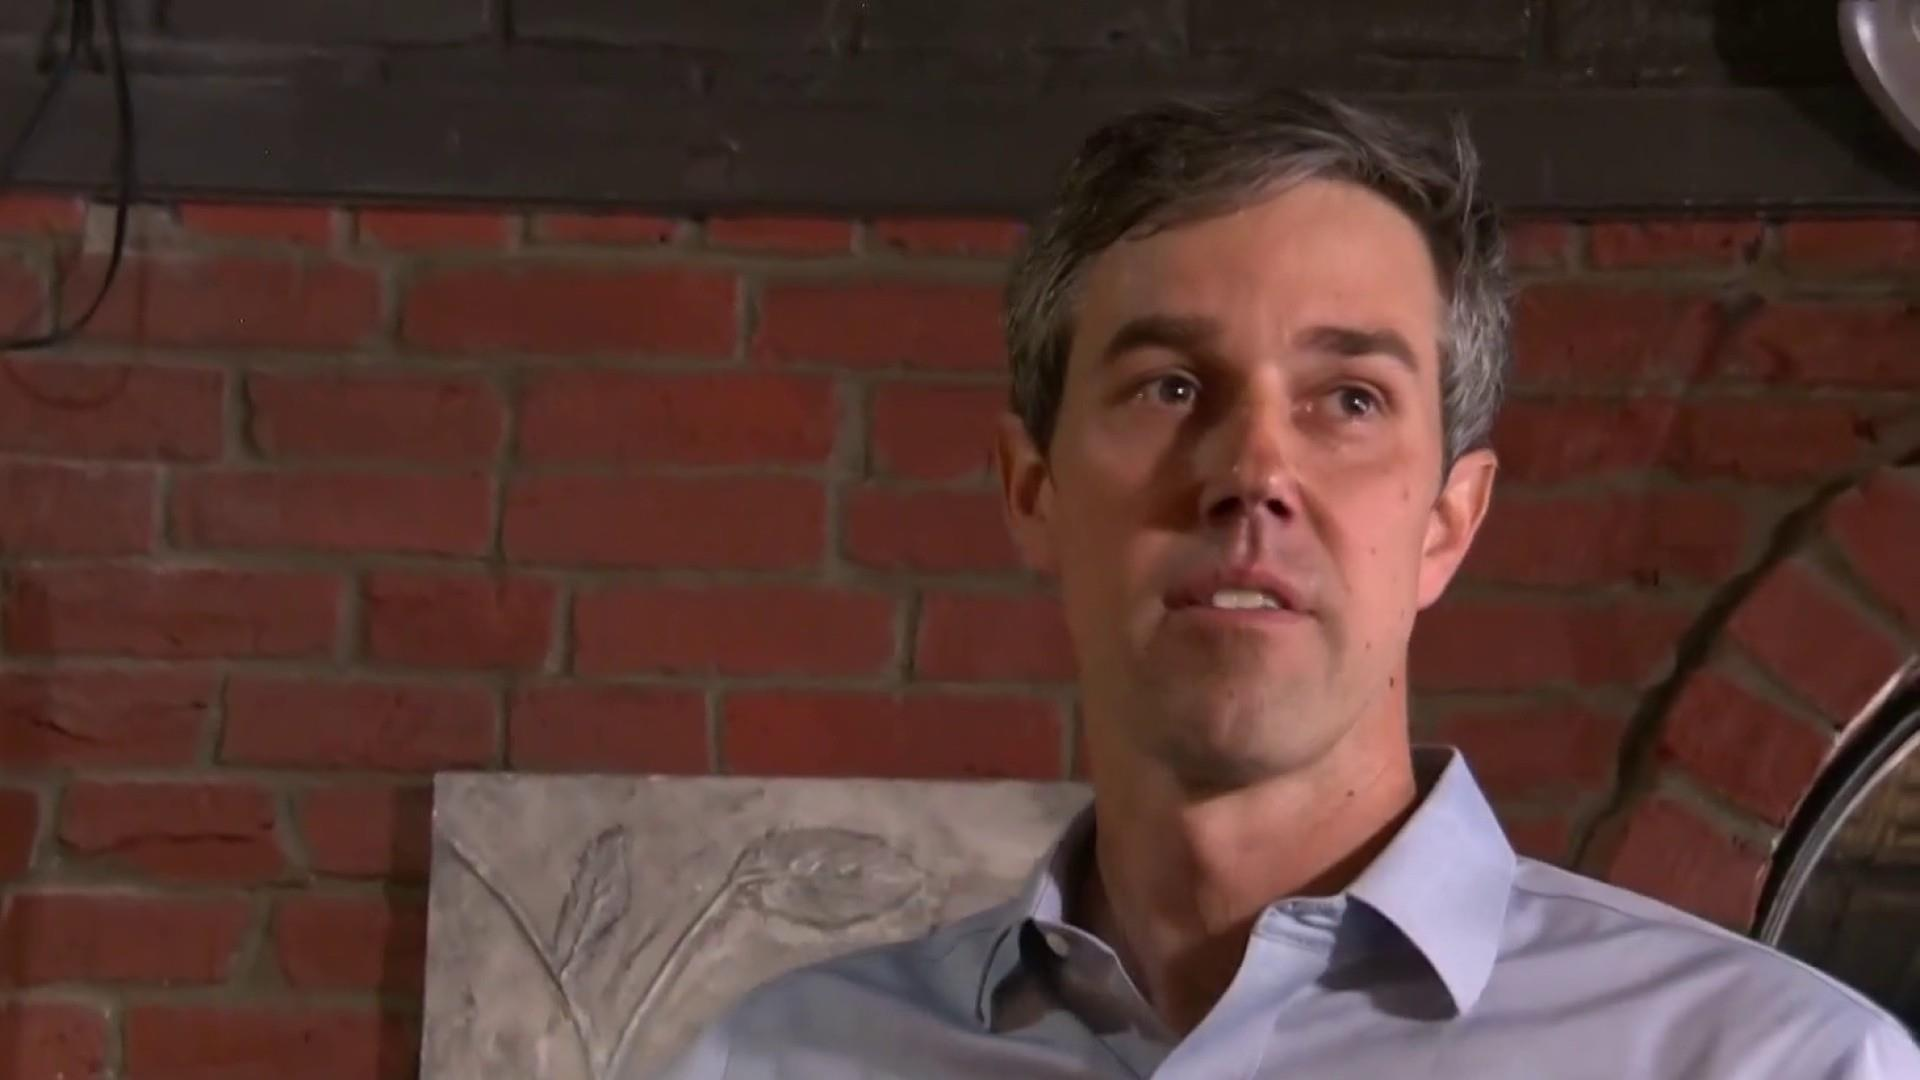 Beto: Ending federal prohibition of Marijuana could help mental health problems, opioid crisis